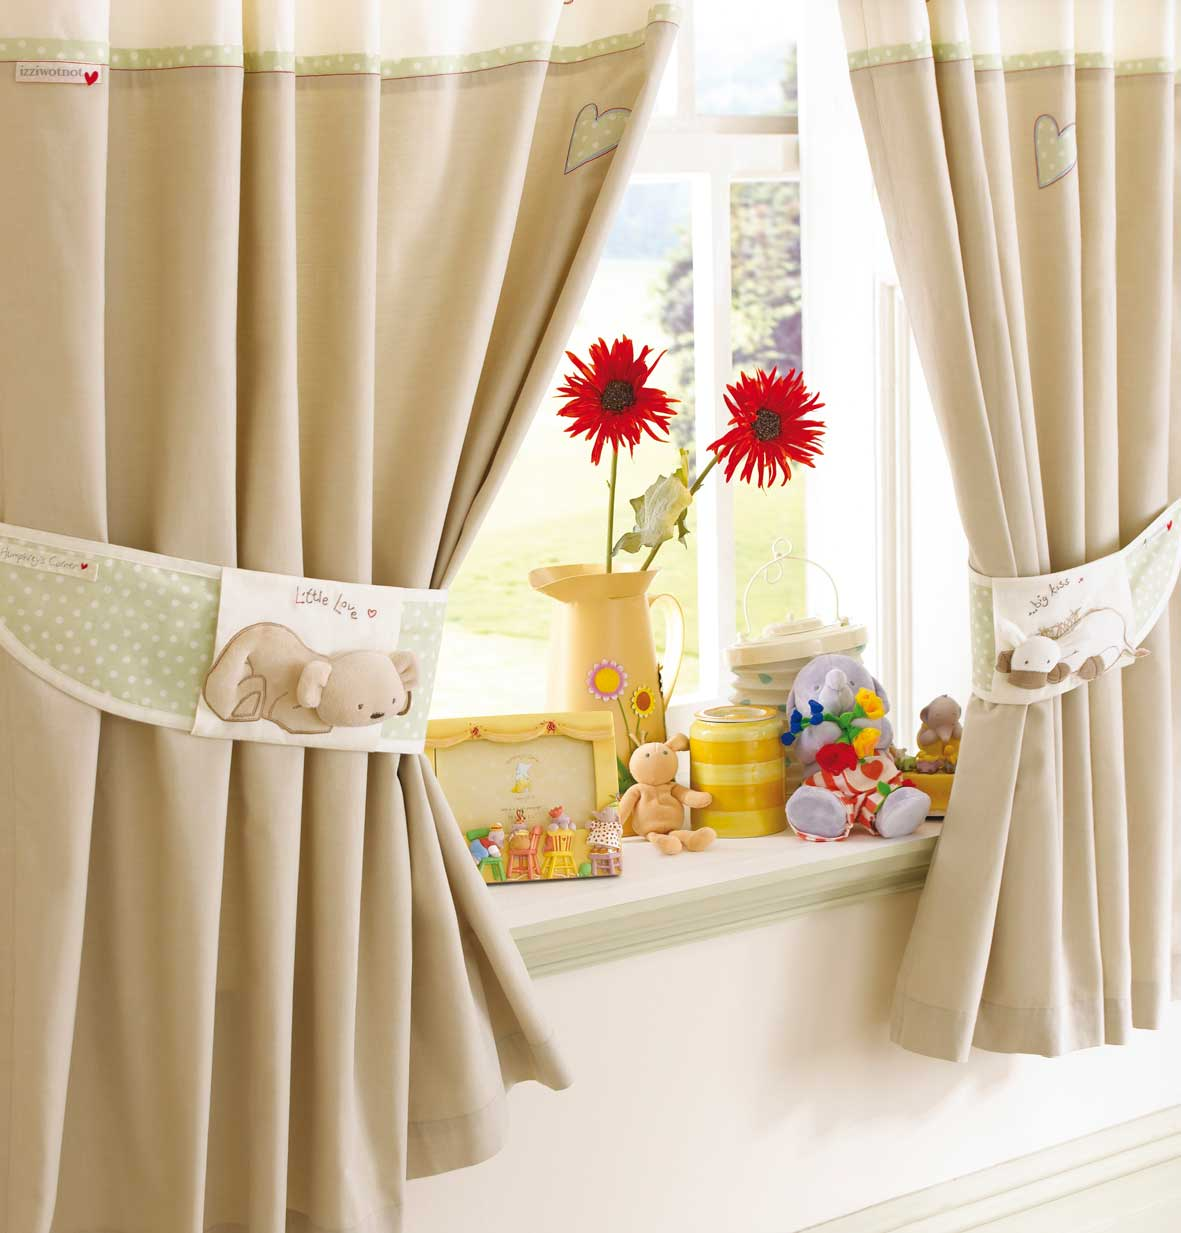 designs nice curtain ideas kitchen magnificent for window beautiful room of drawing and rod front size full living curtains modern drapes bedroom decorating preeminent